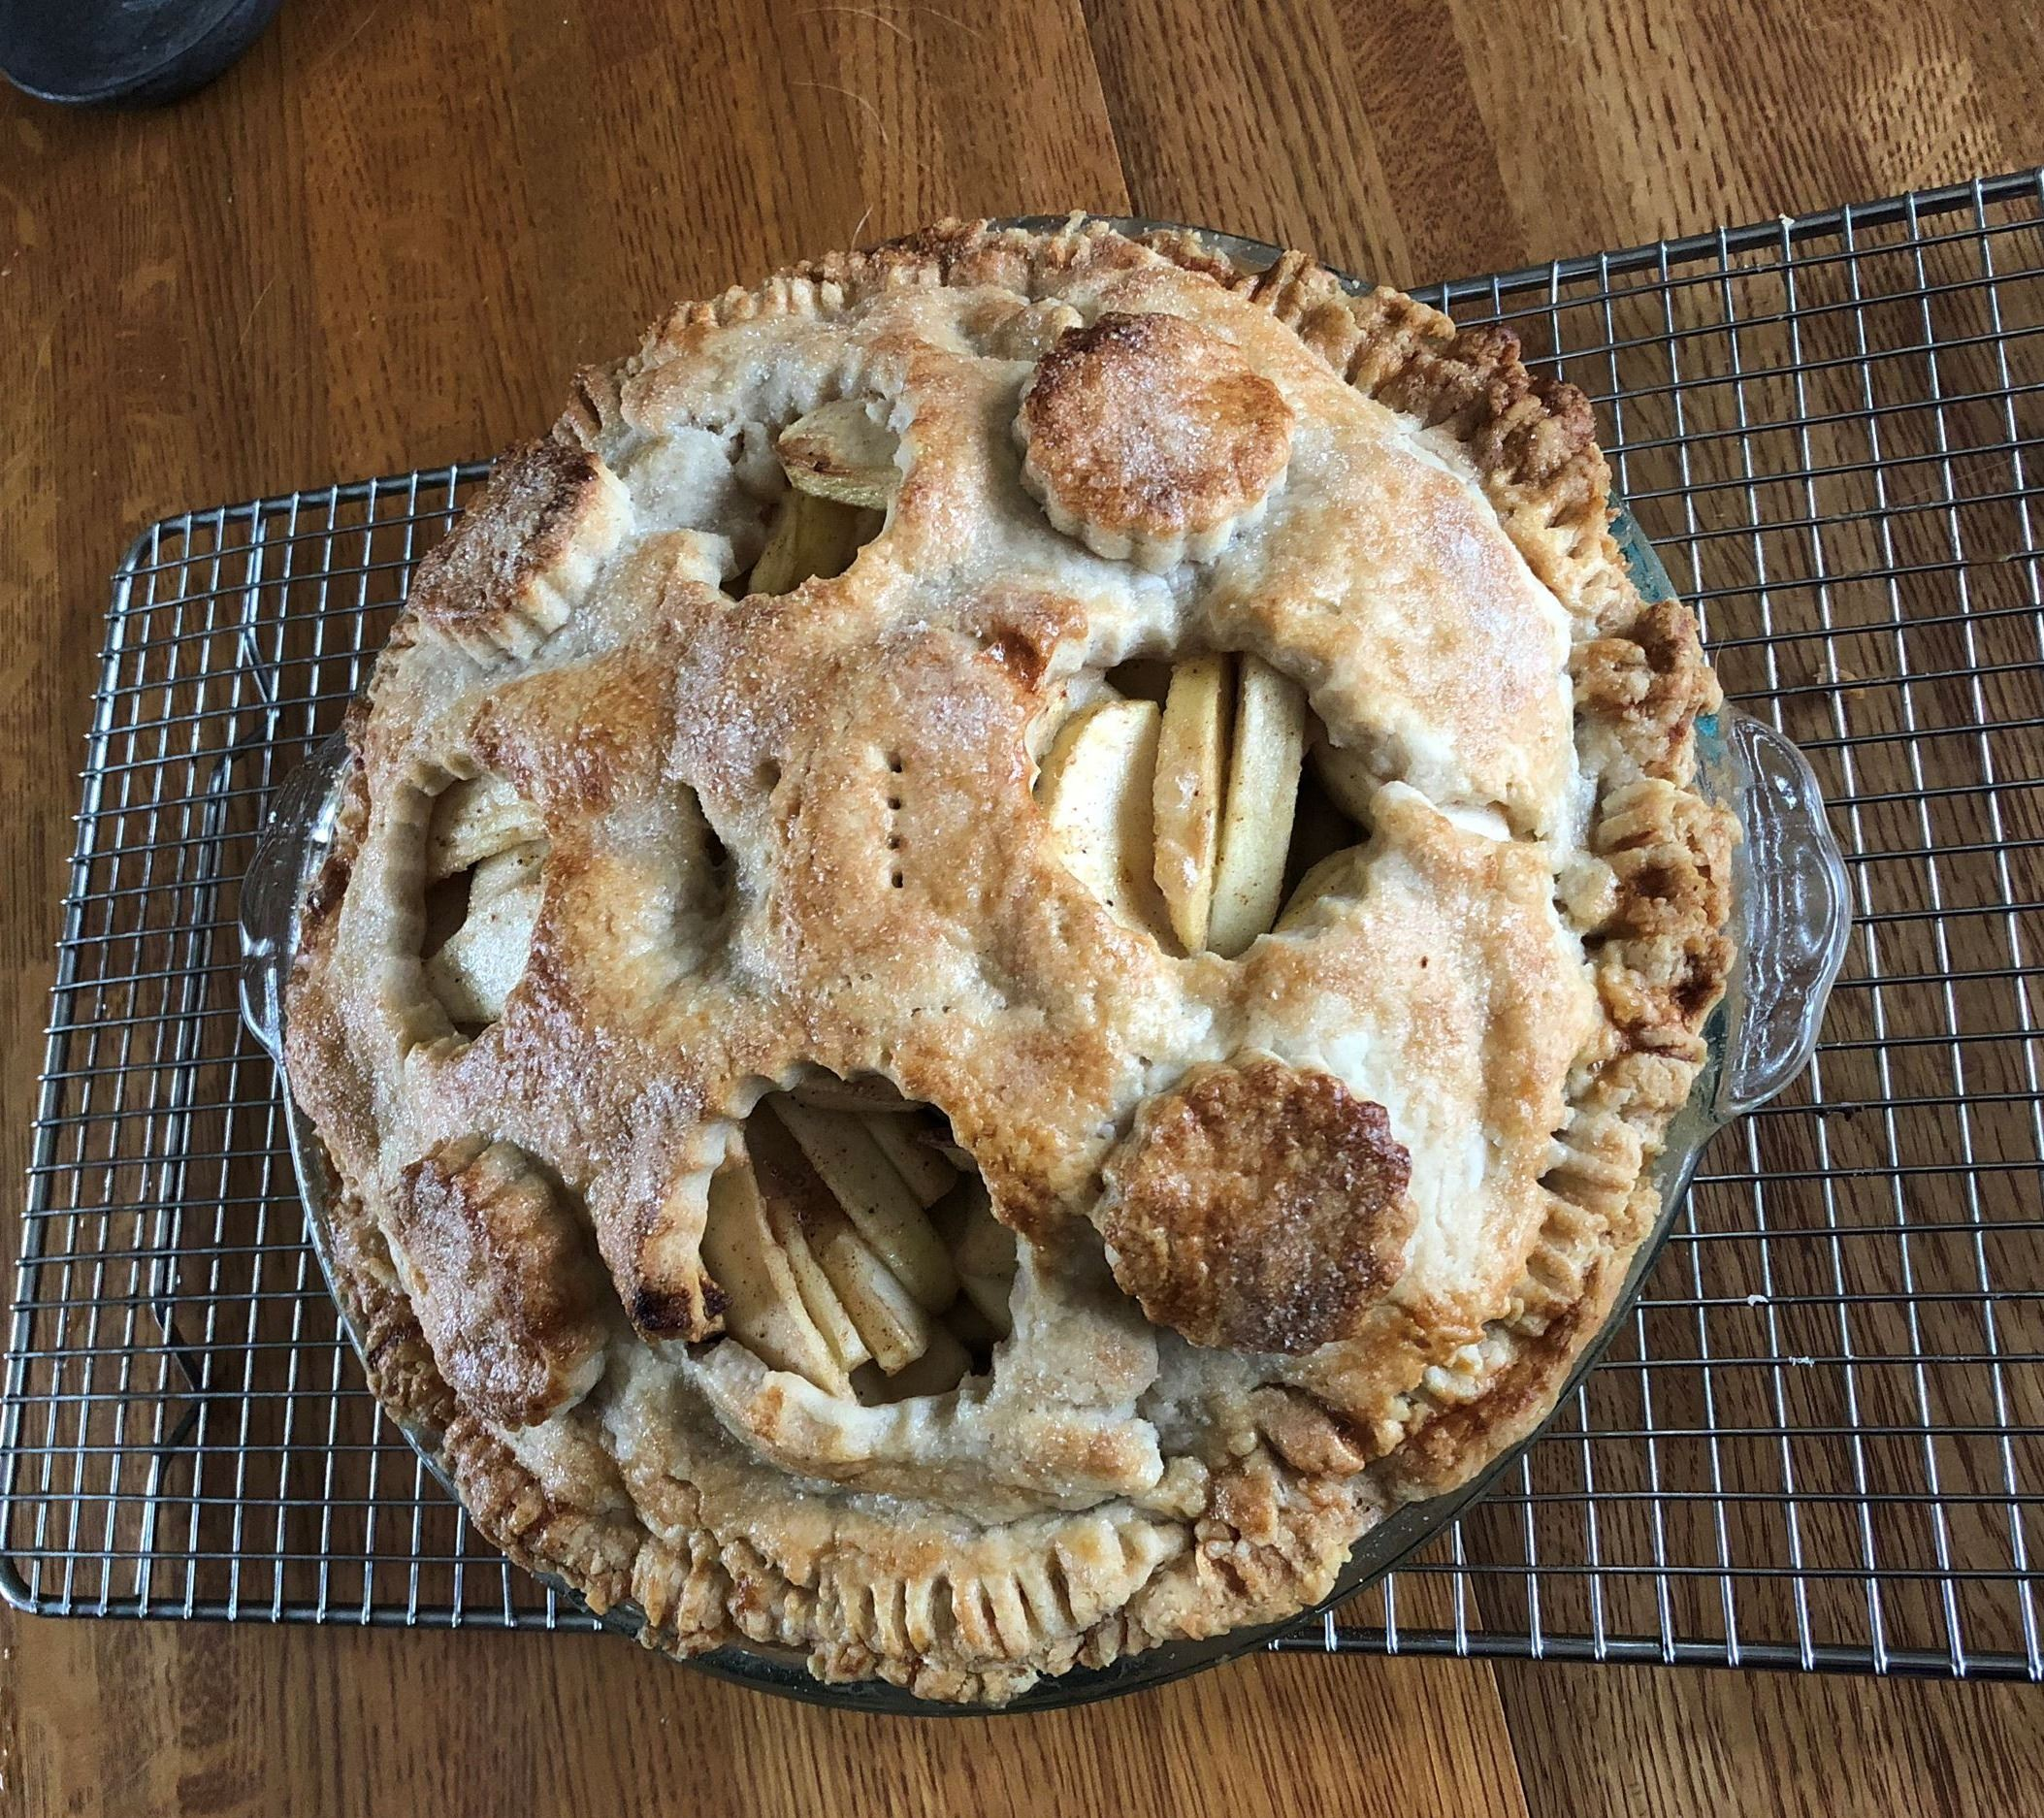 Image of a freshly baked apple pie.